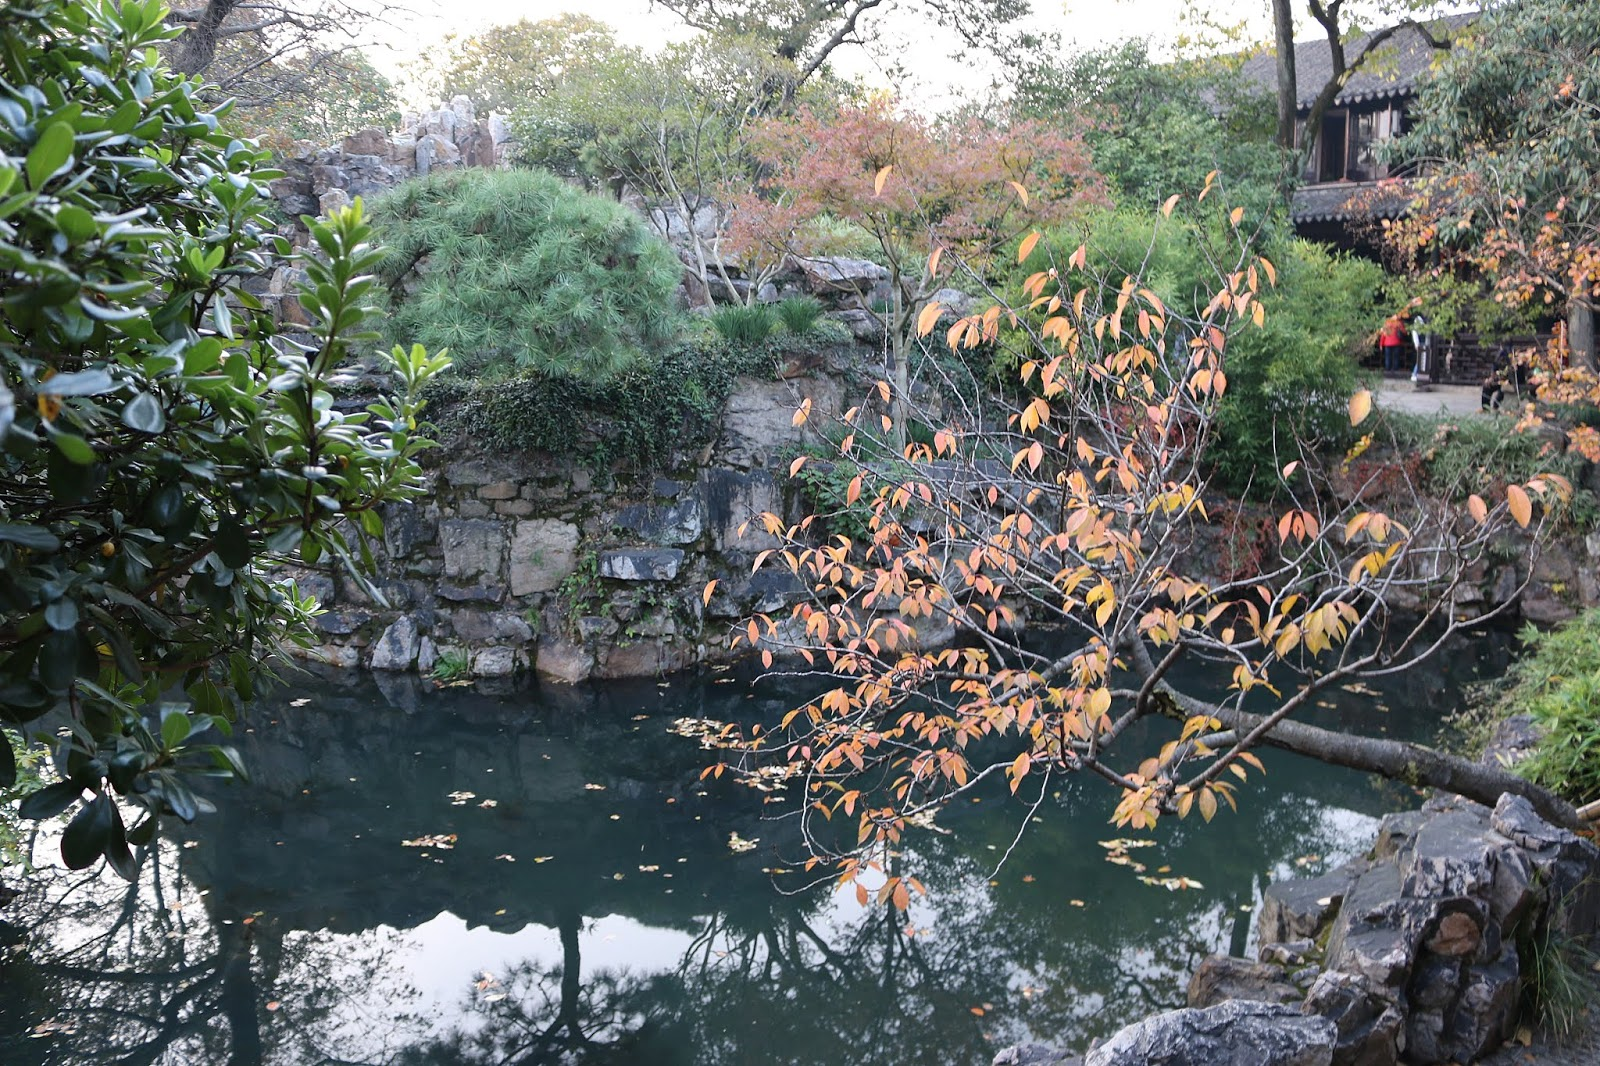 Couple's Garden (Lotus Garden) Suzhou